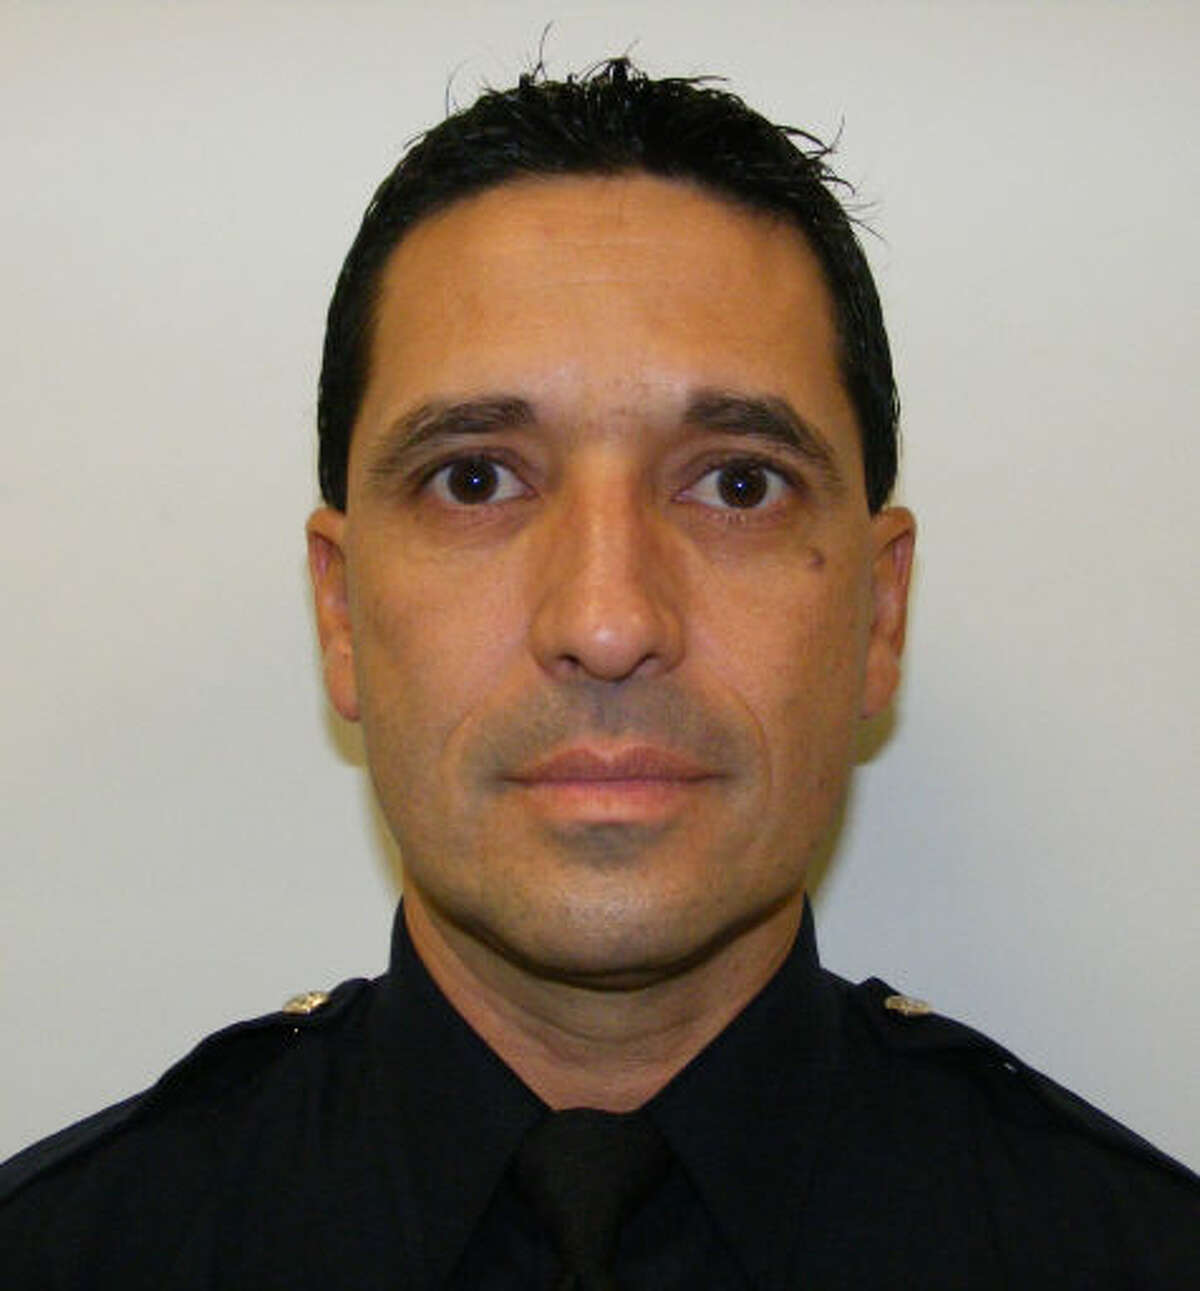 Former Bexar County Sheriff's Deputy Joel Chavez, 51, was charged with official oppression.